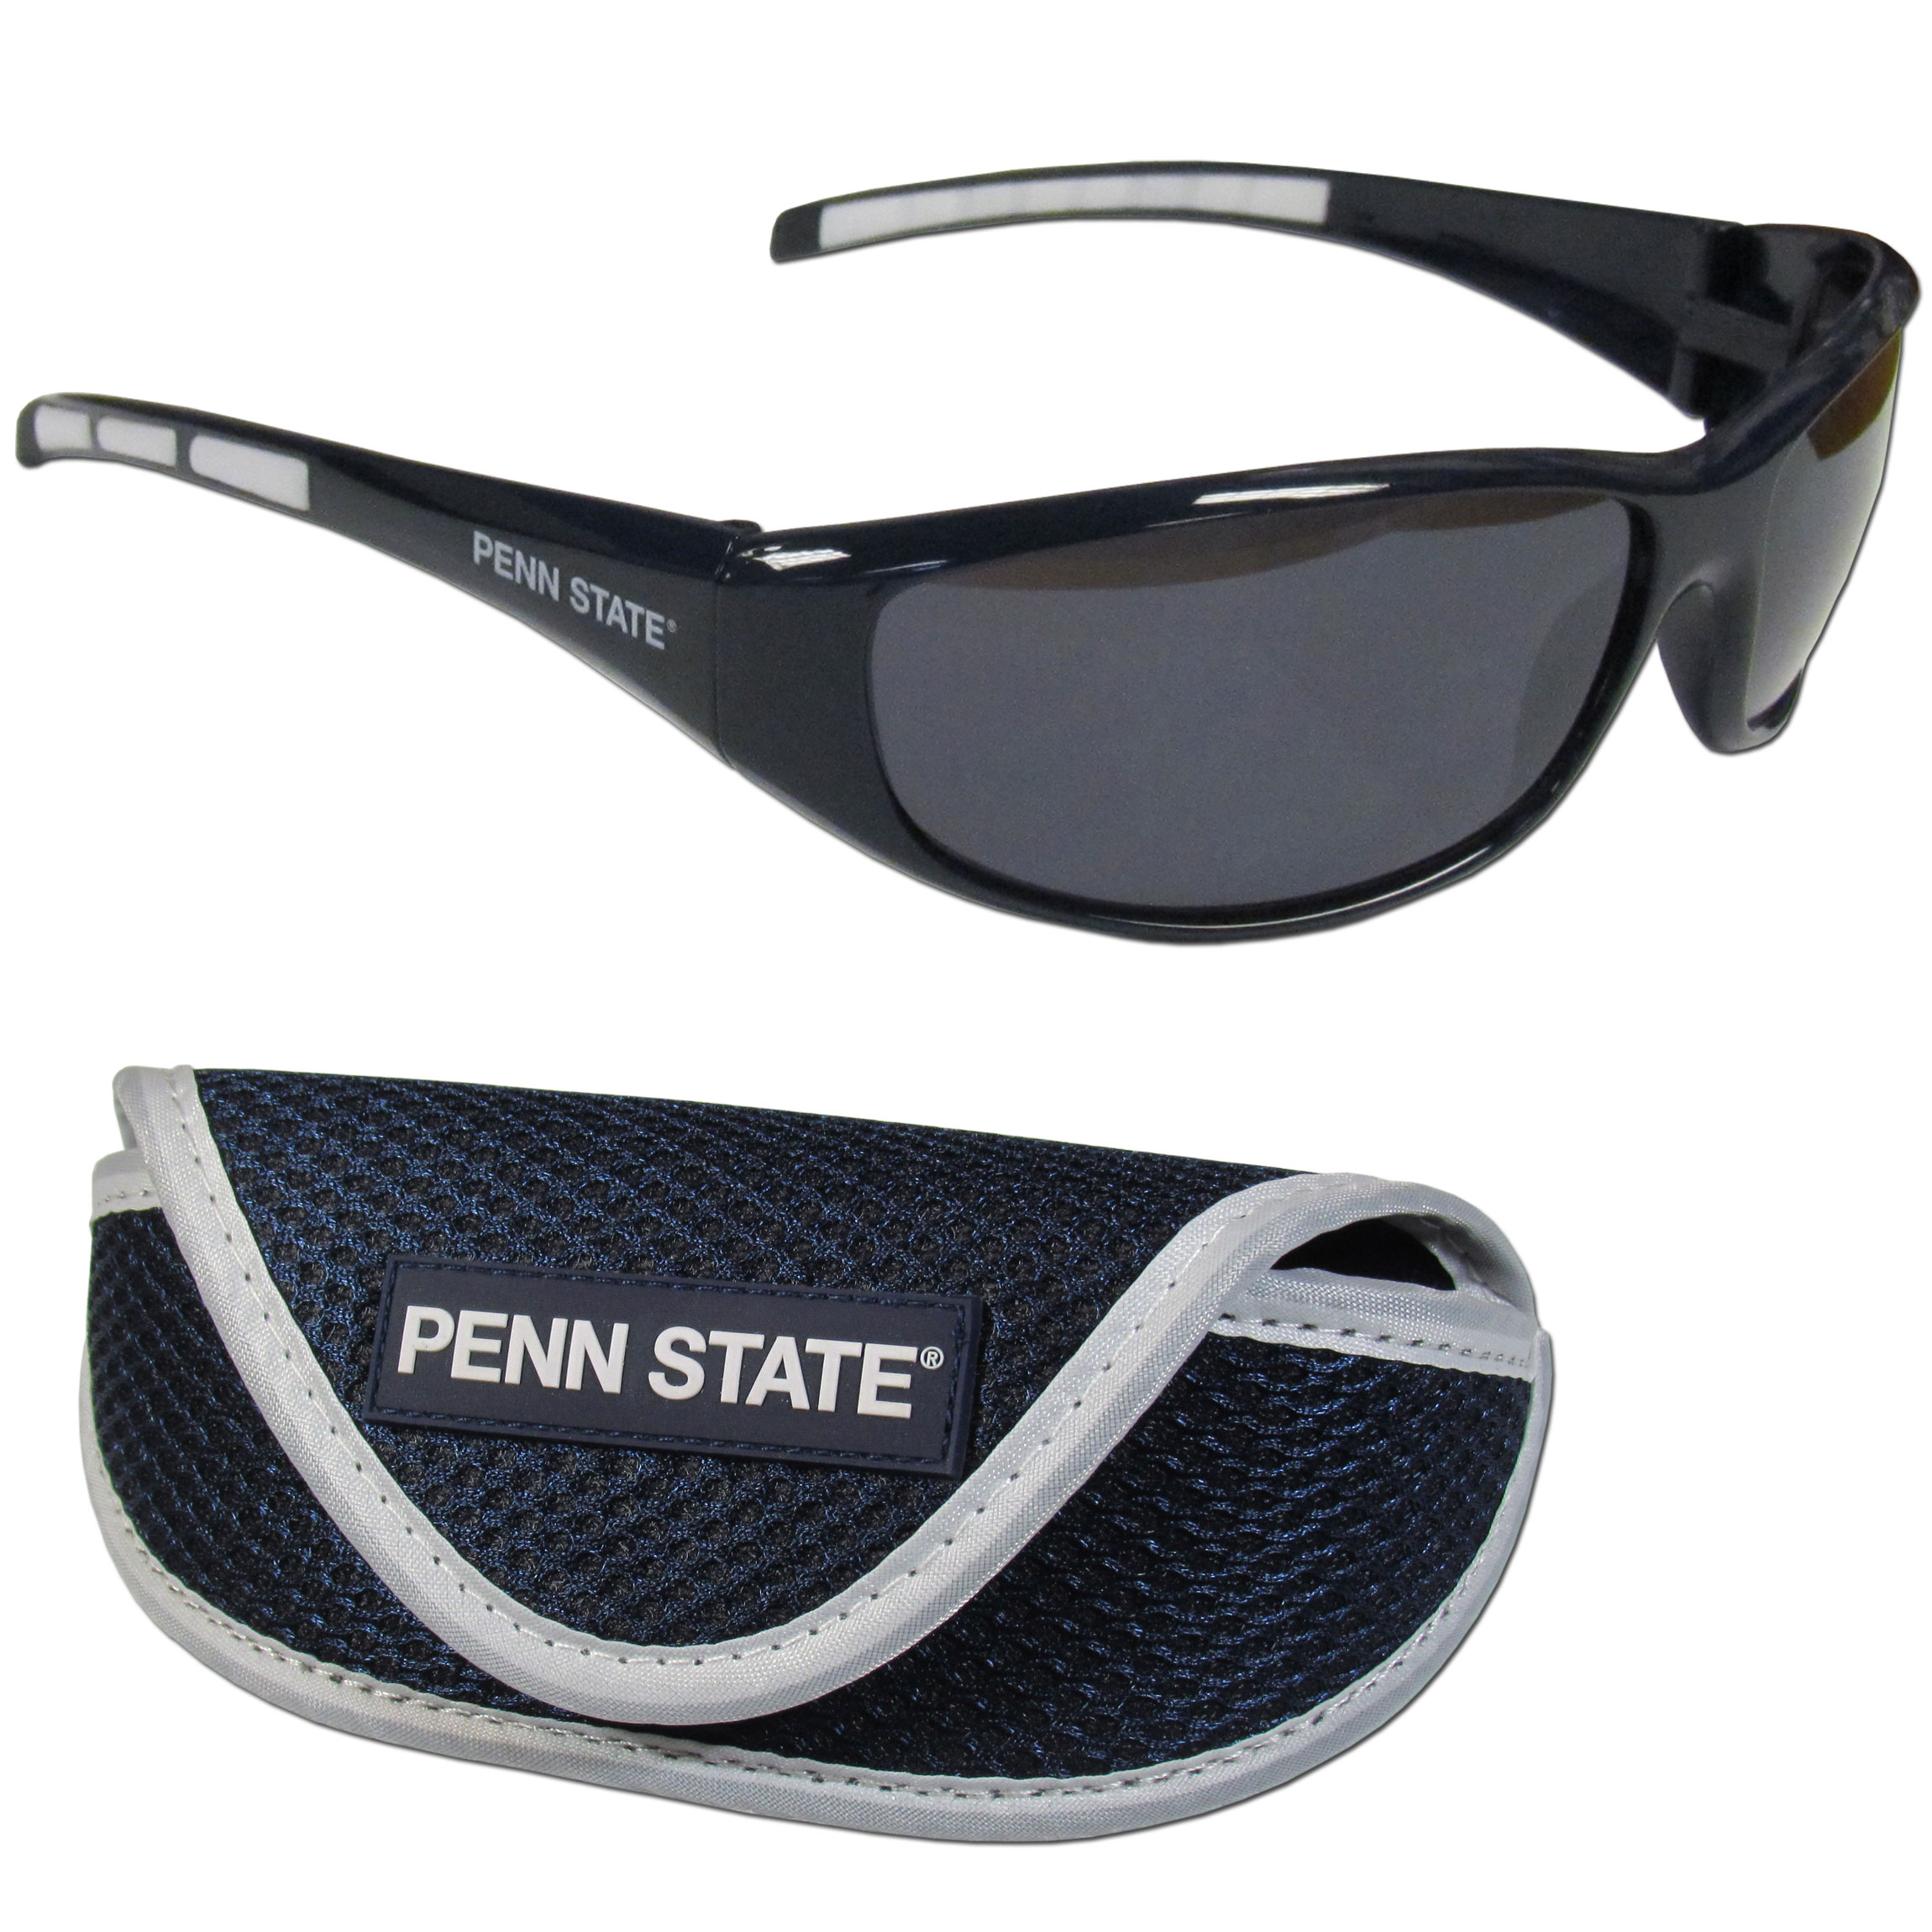 Penn St. Nittany Lions Wrap Sunglass and Case Set - This great set includes a high quality pair of Penn St. Nittany Lions wrap sunglasses and soft sport carrying case.